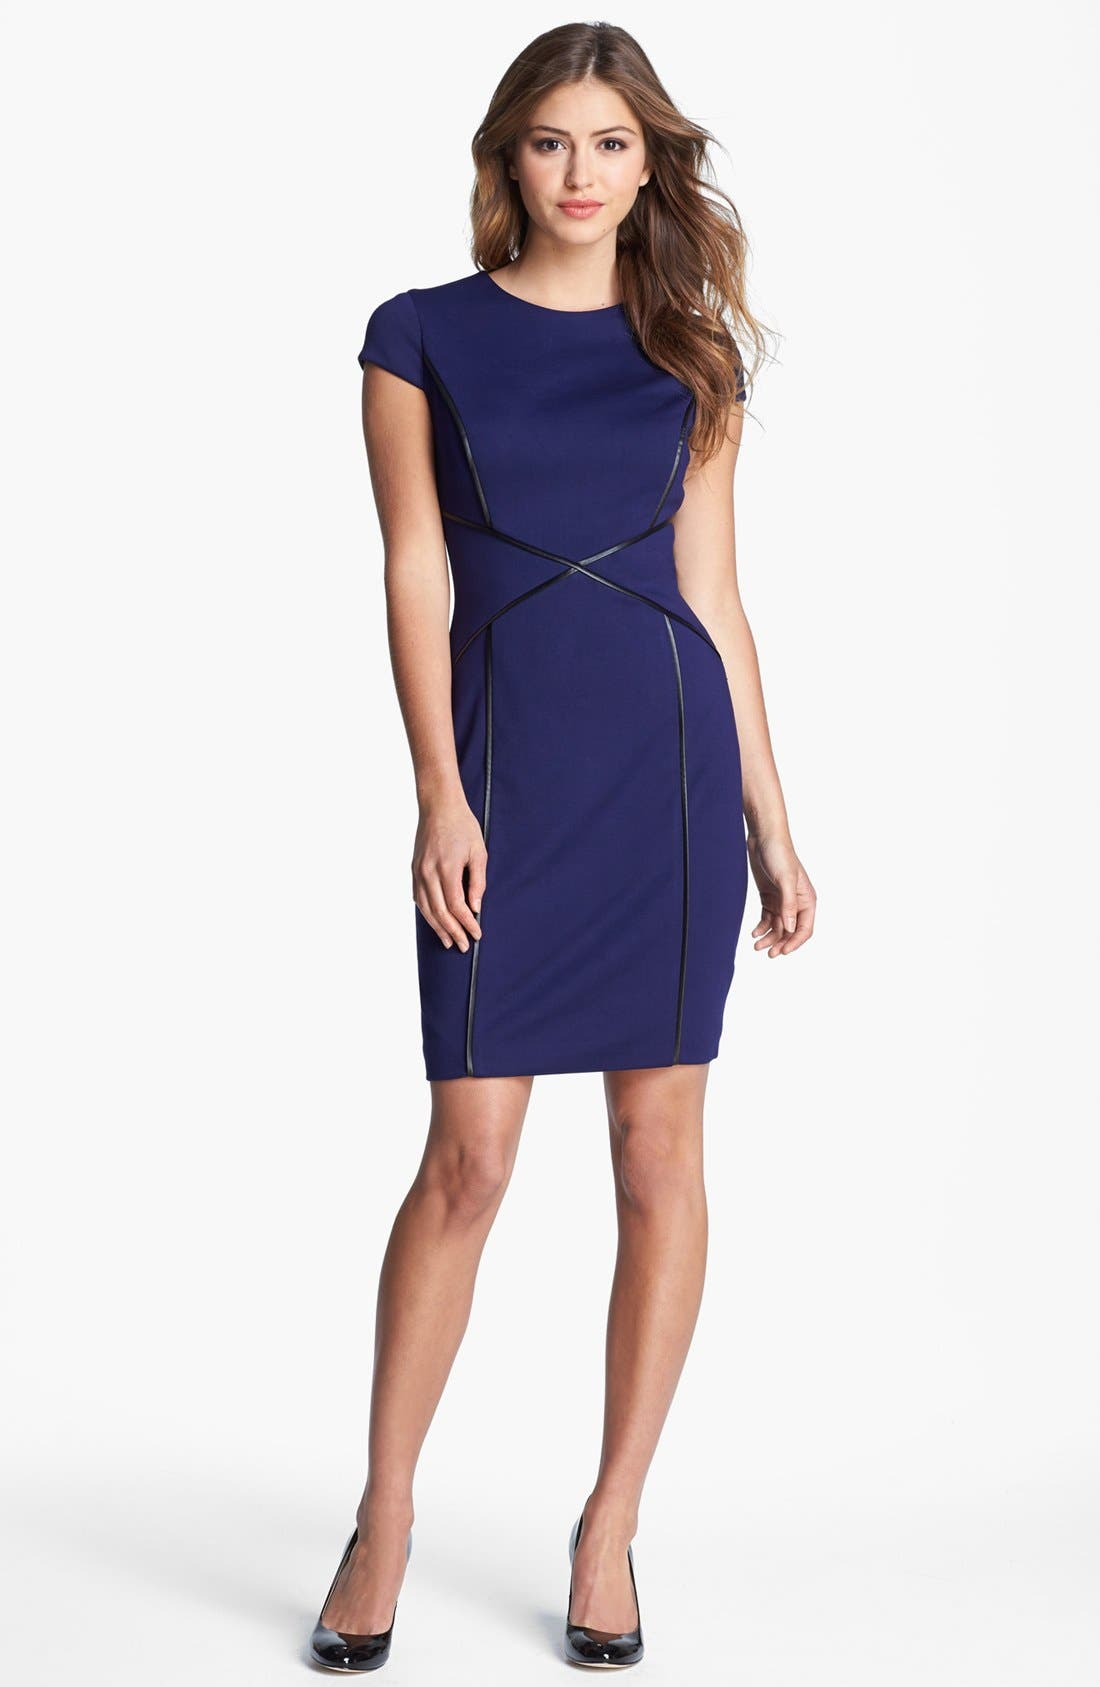 Alternate Image 1 Selected - Cynthia Steffe Cap Sleeve Faux Leather Trim Ponte Sheath Dress